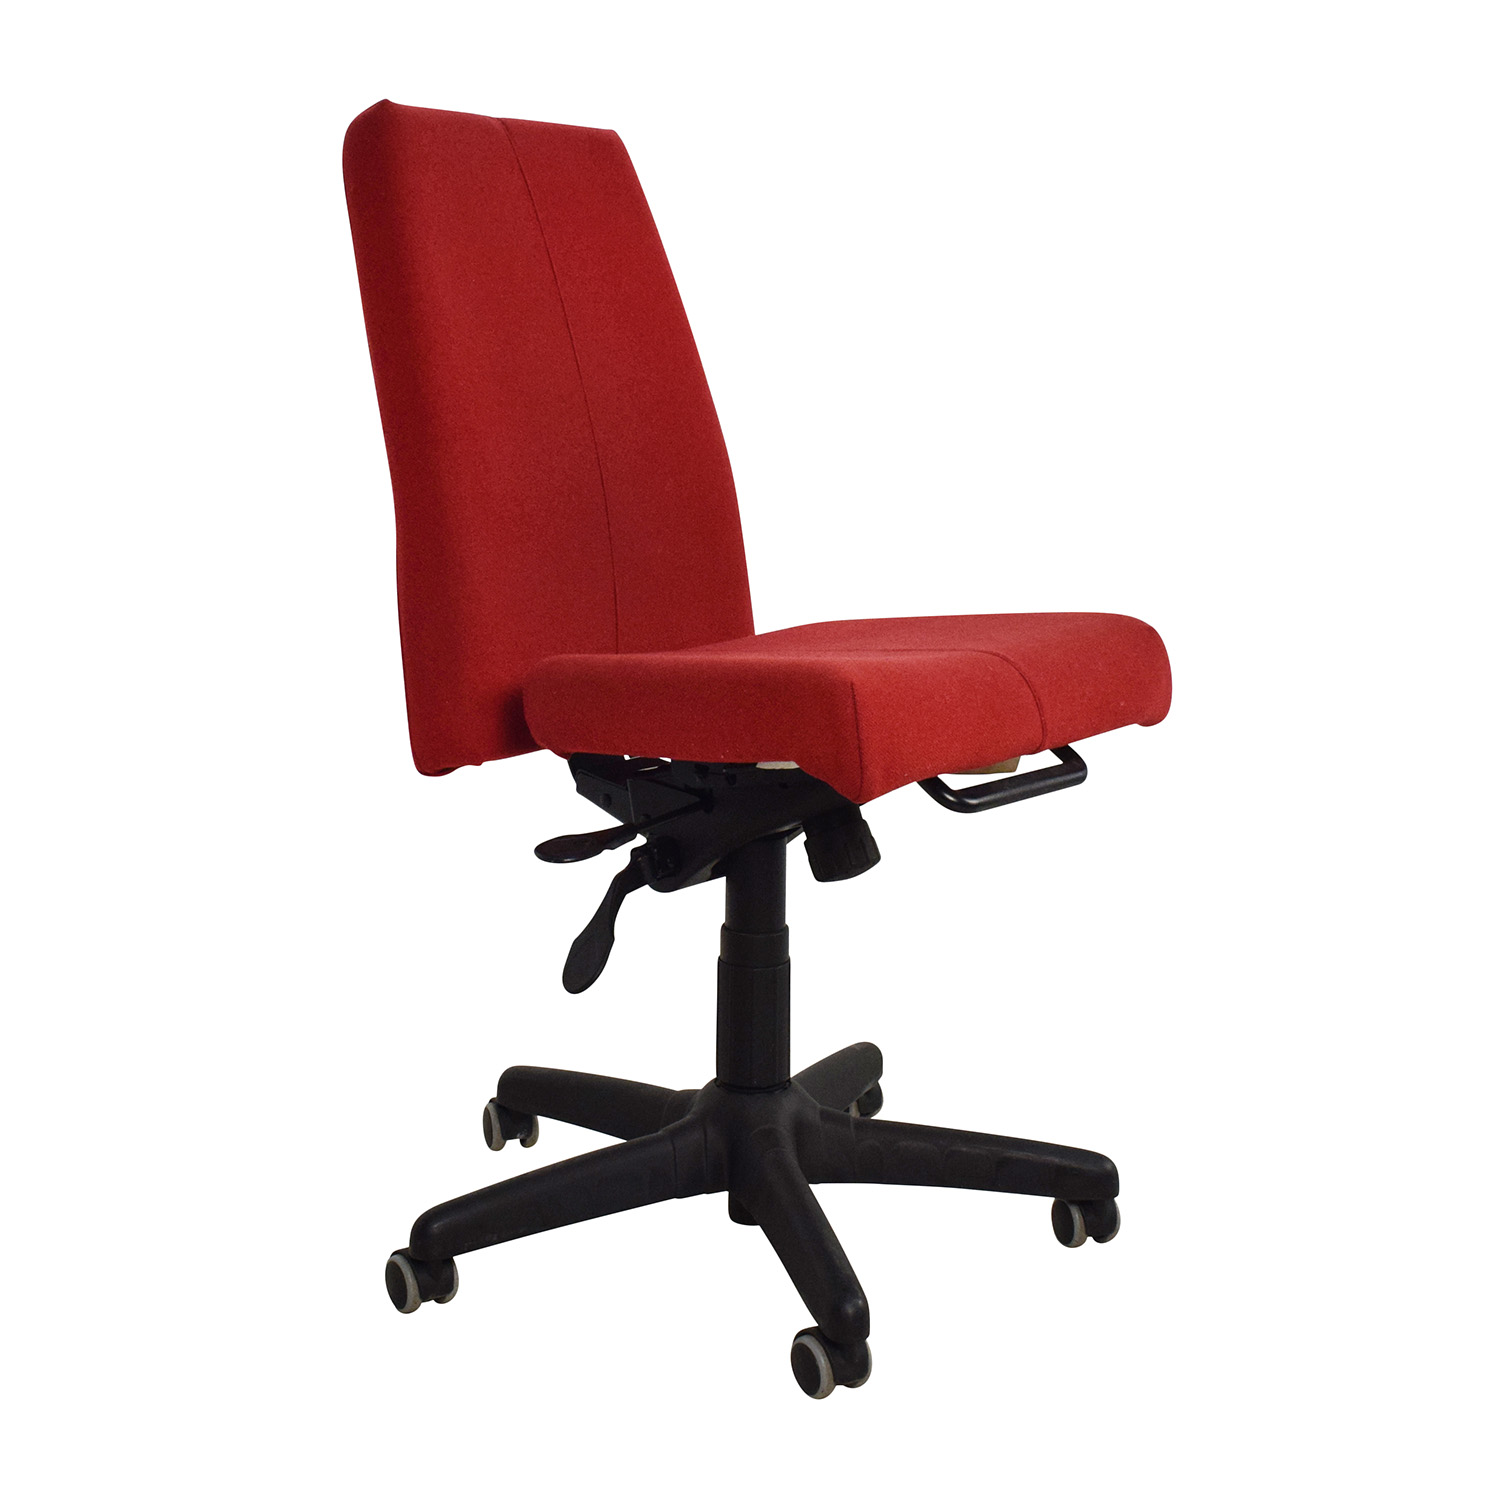 Armless Desk Chairs 90 Off Red Armless Adjustable Home Office Chair Chairs